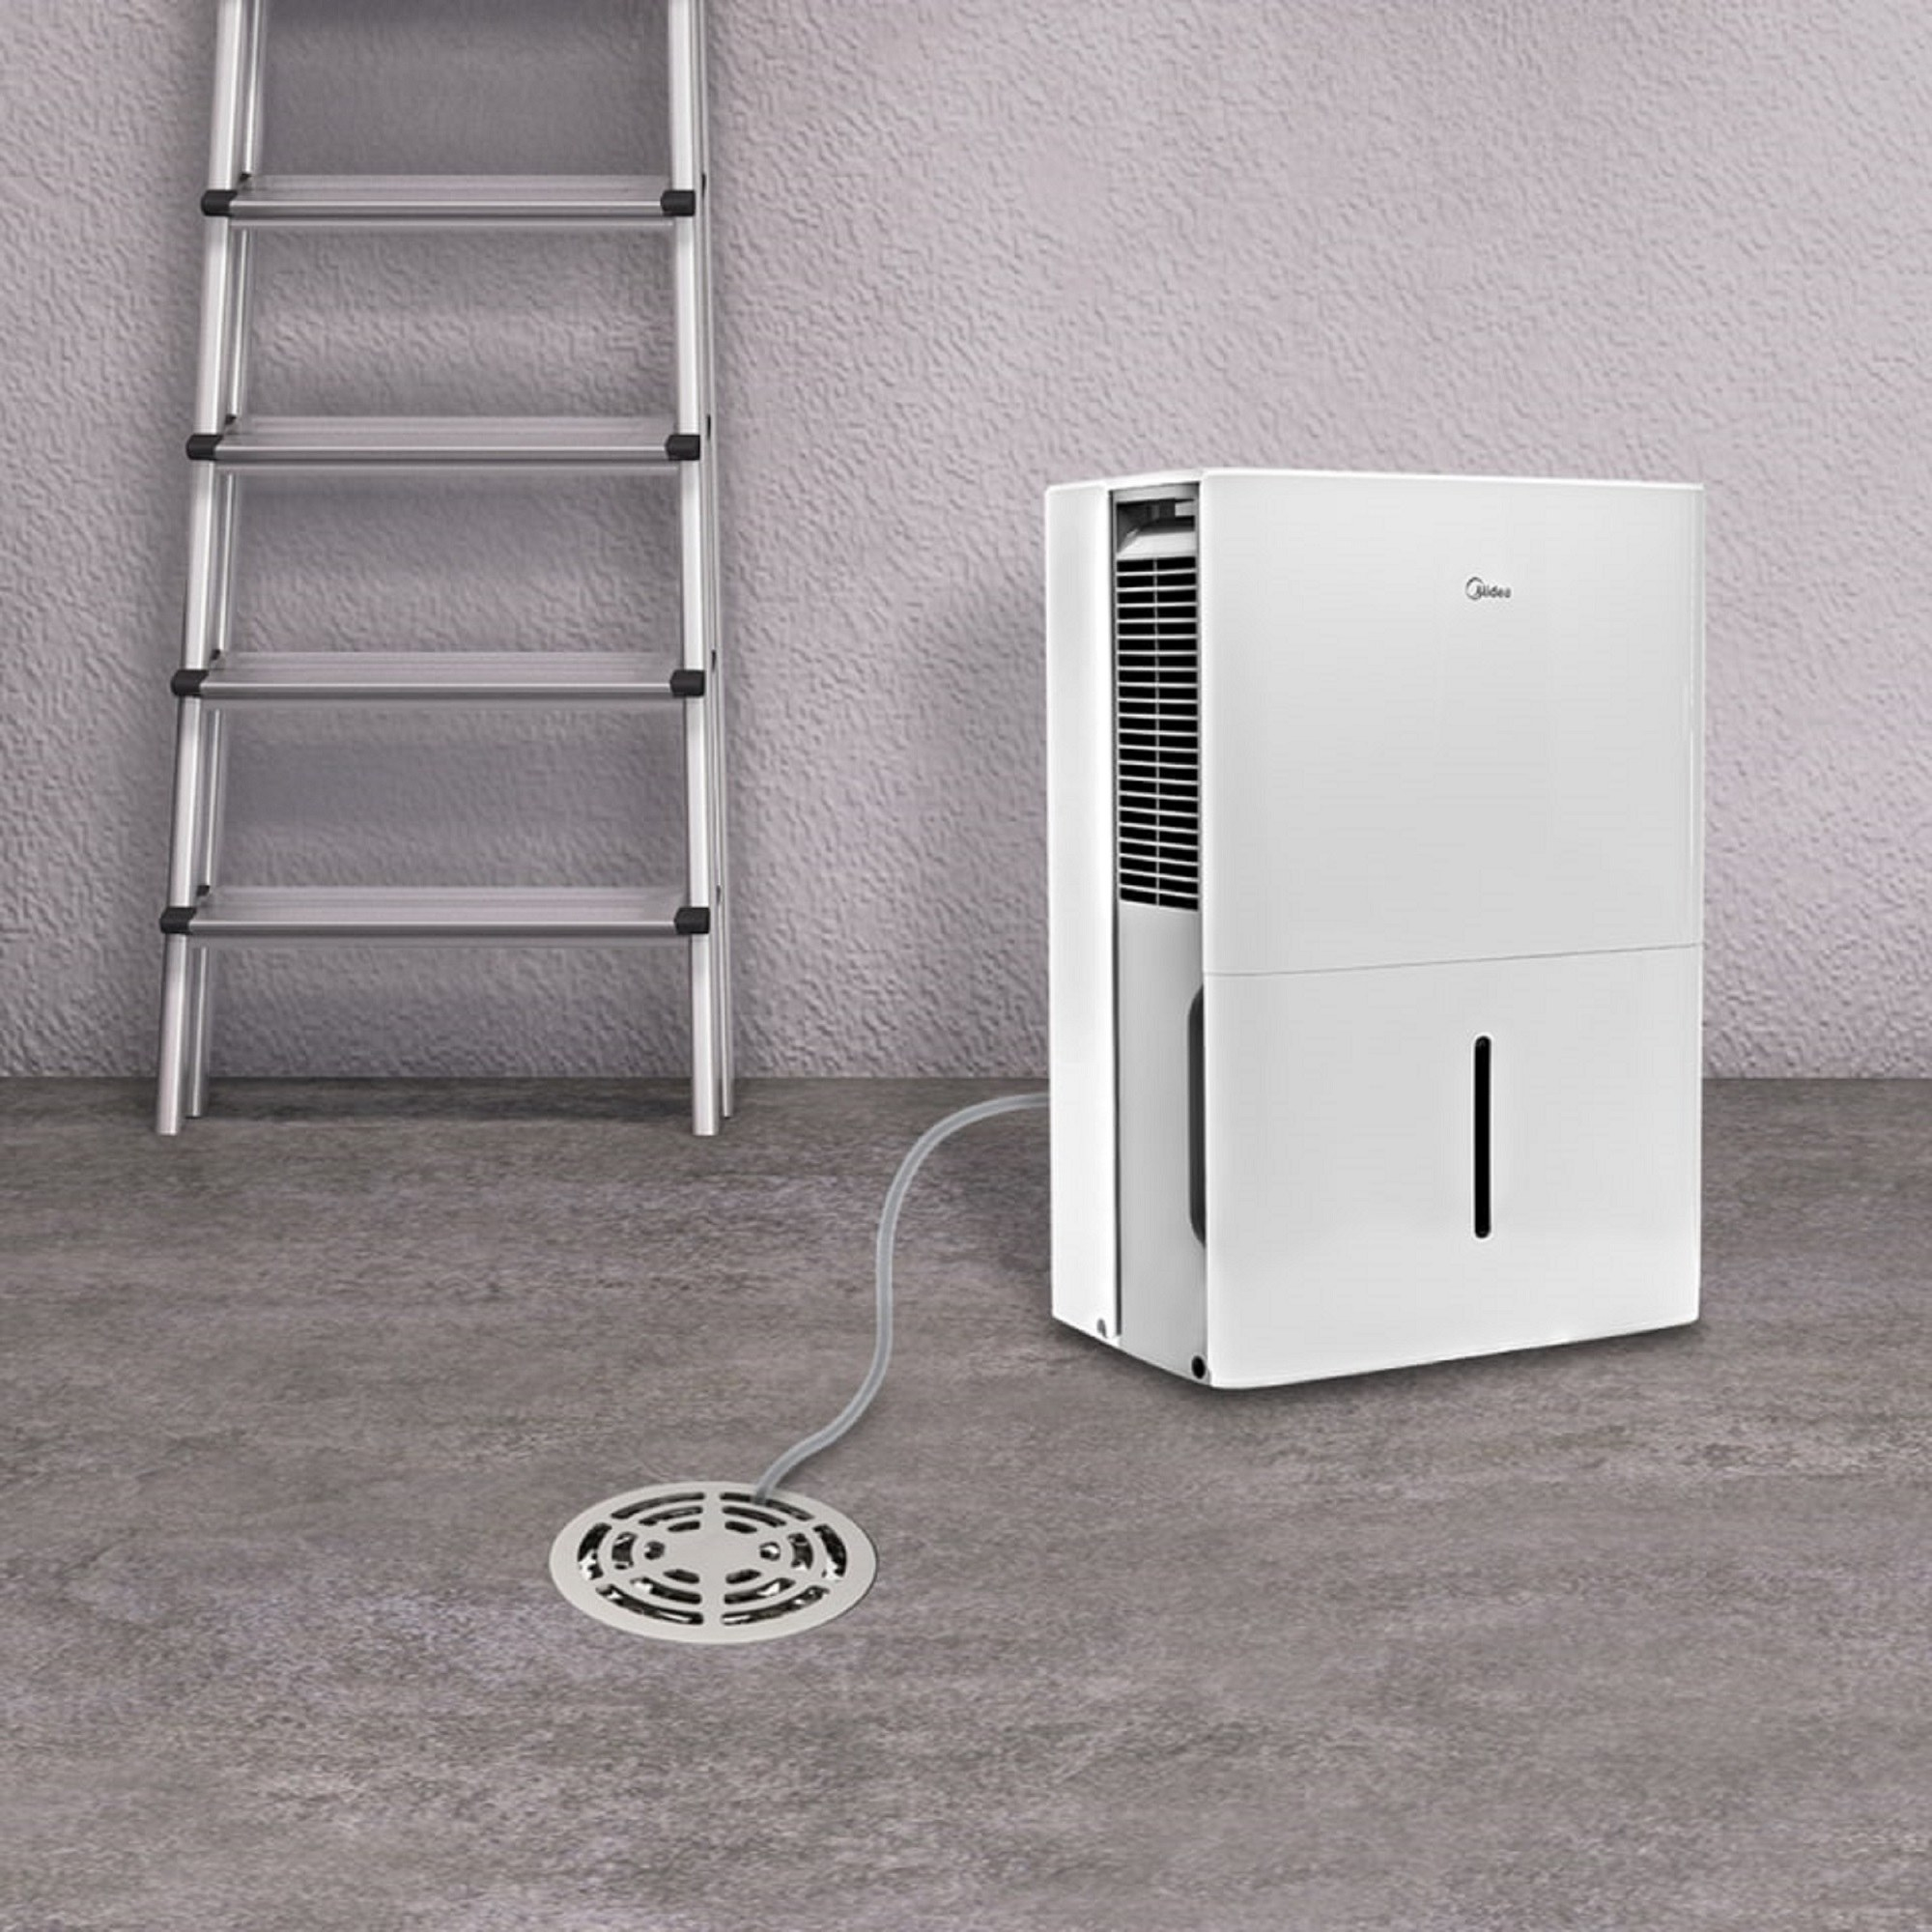 The white and gray dehumidifier